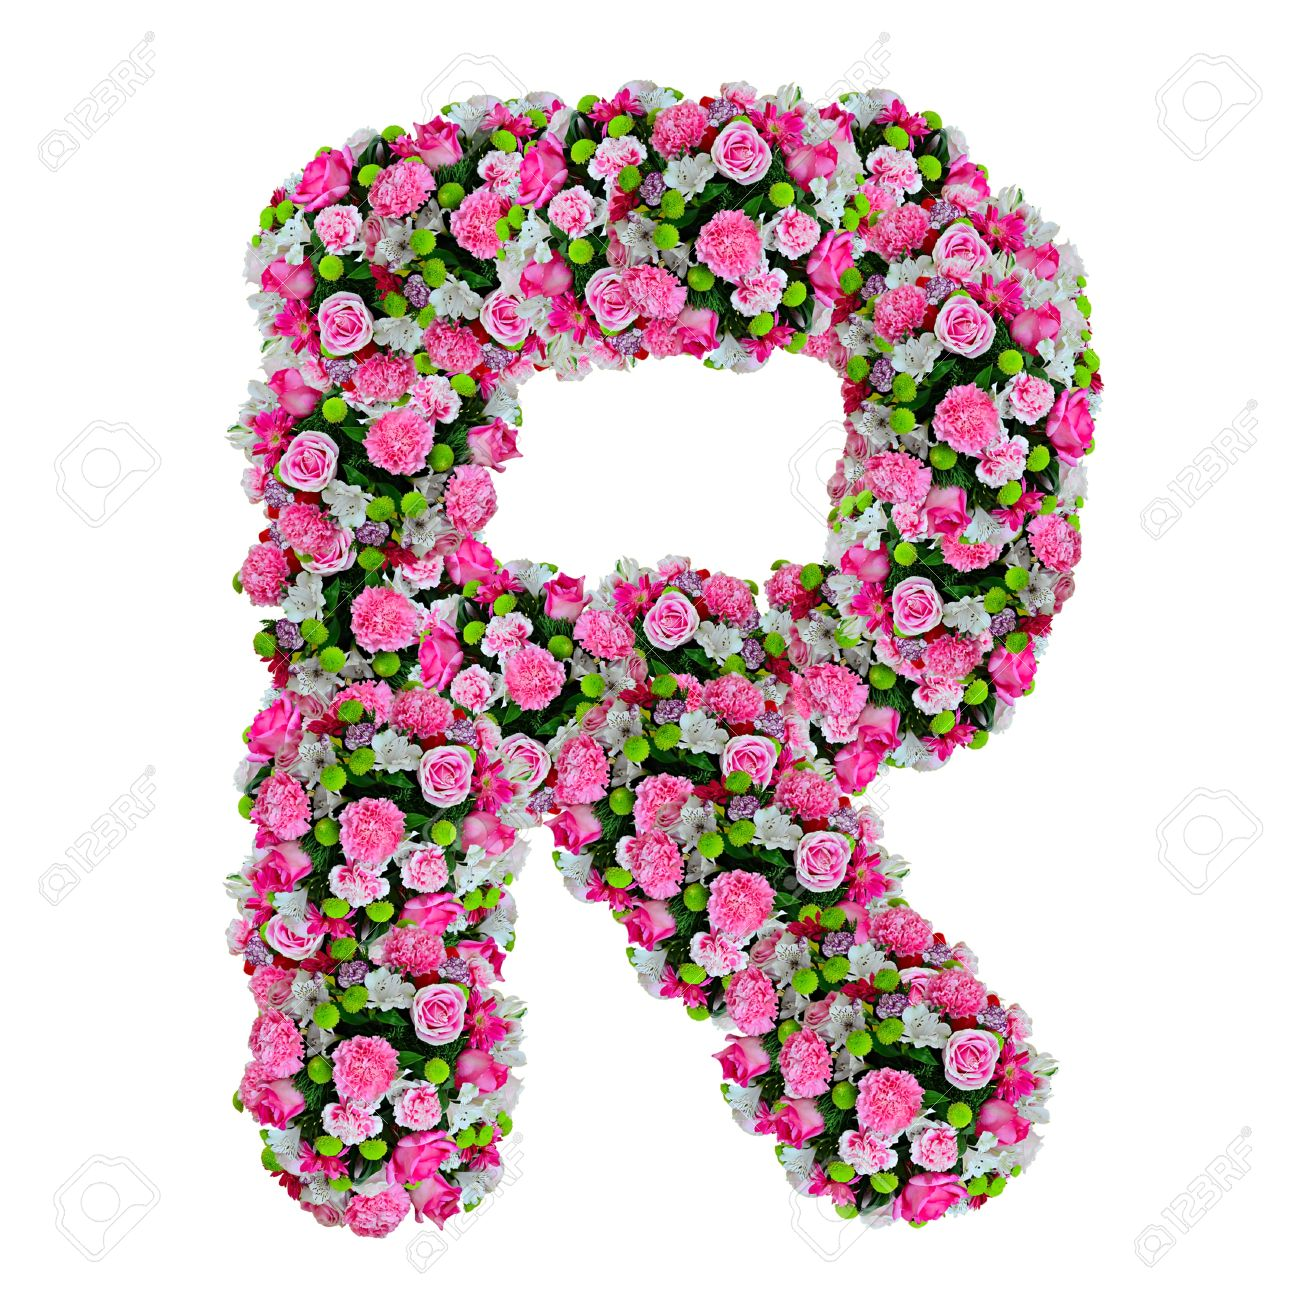 R composition stock photos royalty free r composition images r flower alphabet isolated on white with clipping path stock photo altavistaventures Choice Image